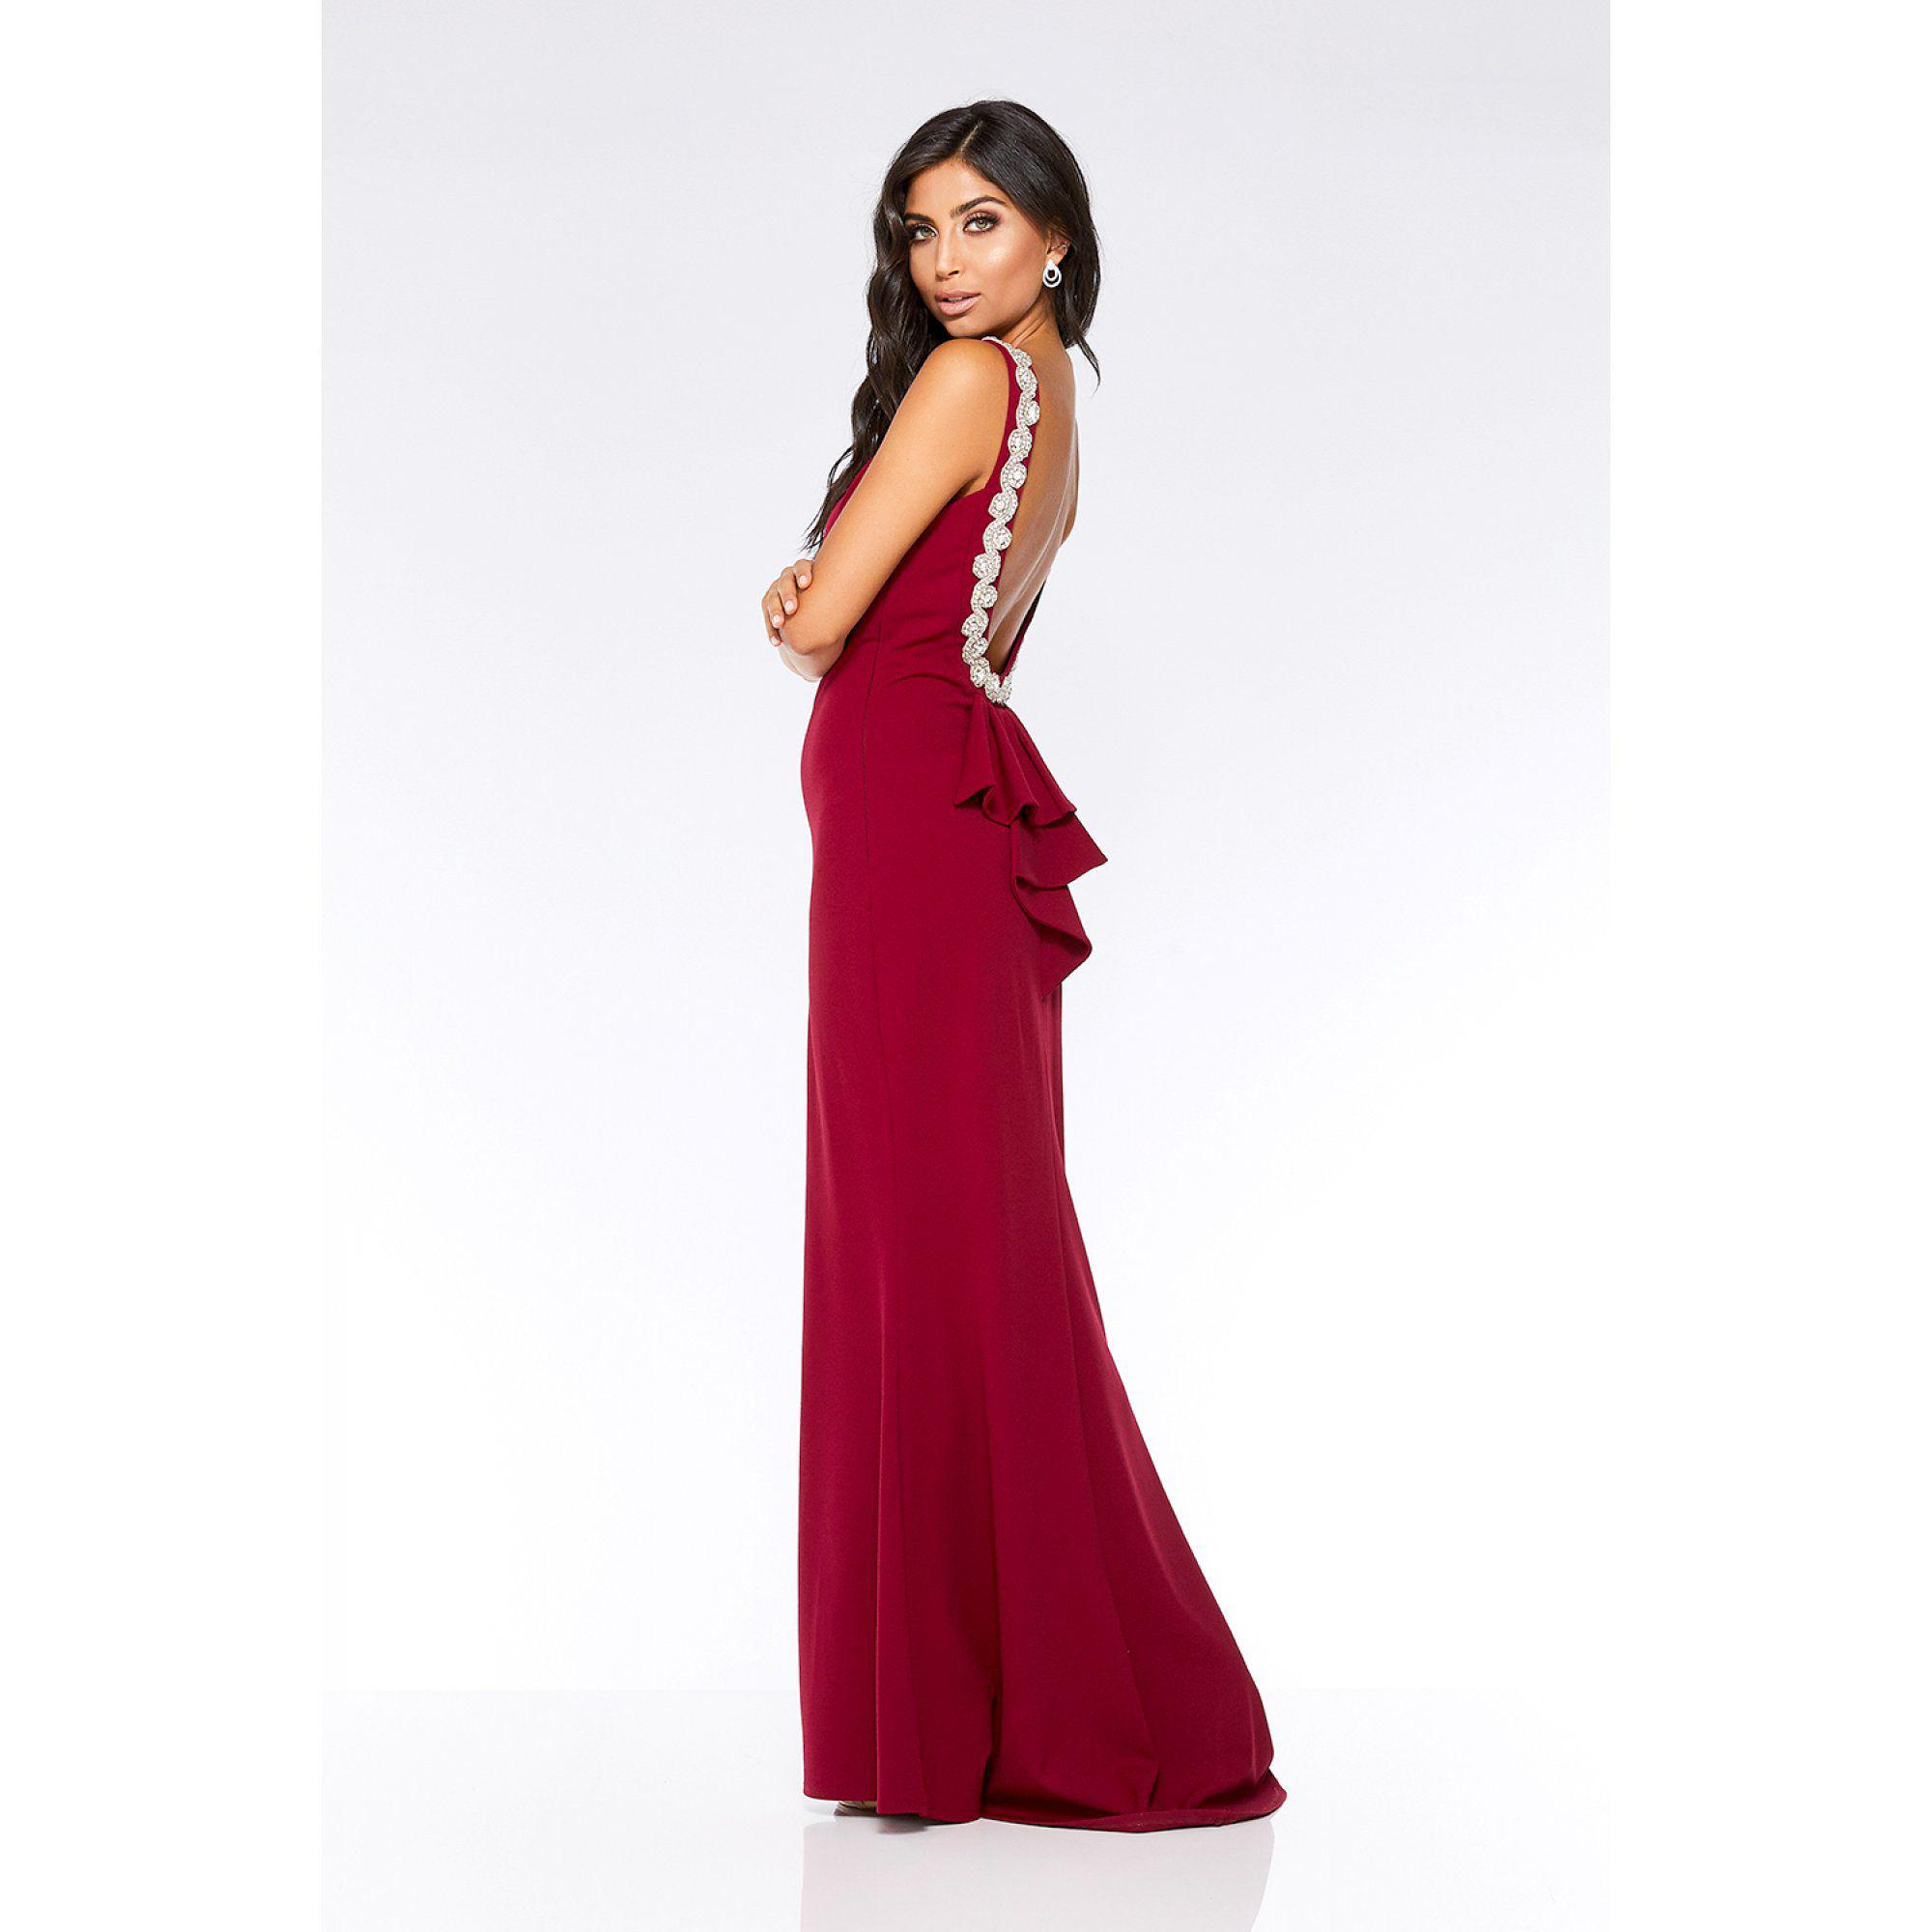 5d26b5f2790b9 Quiz Berry Ruffle Embellished Back Fishtail Maxi Dress in Red - Lyst